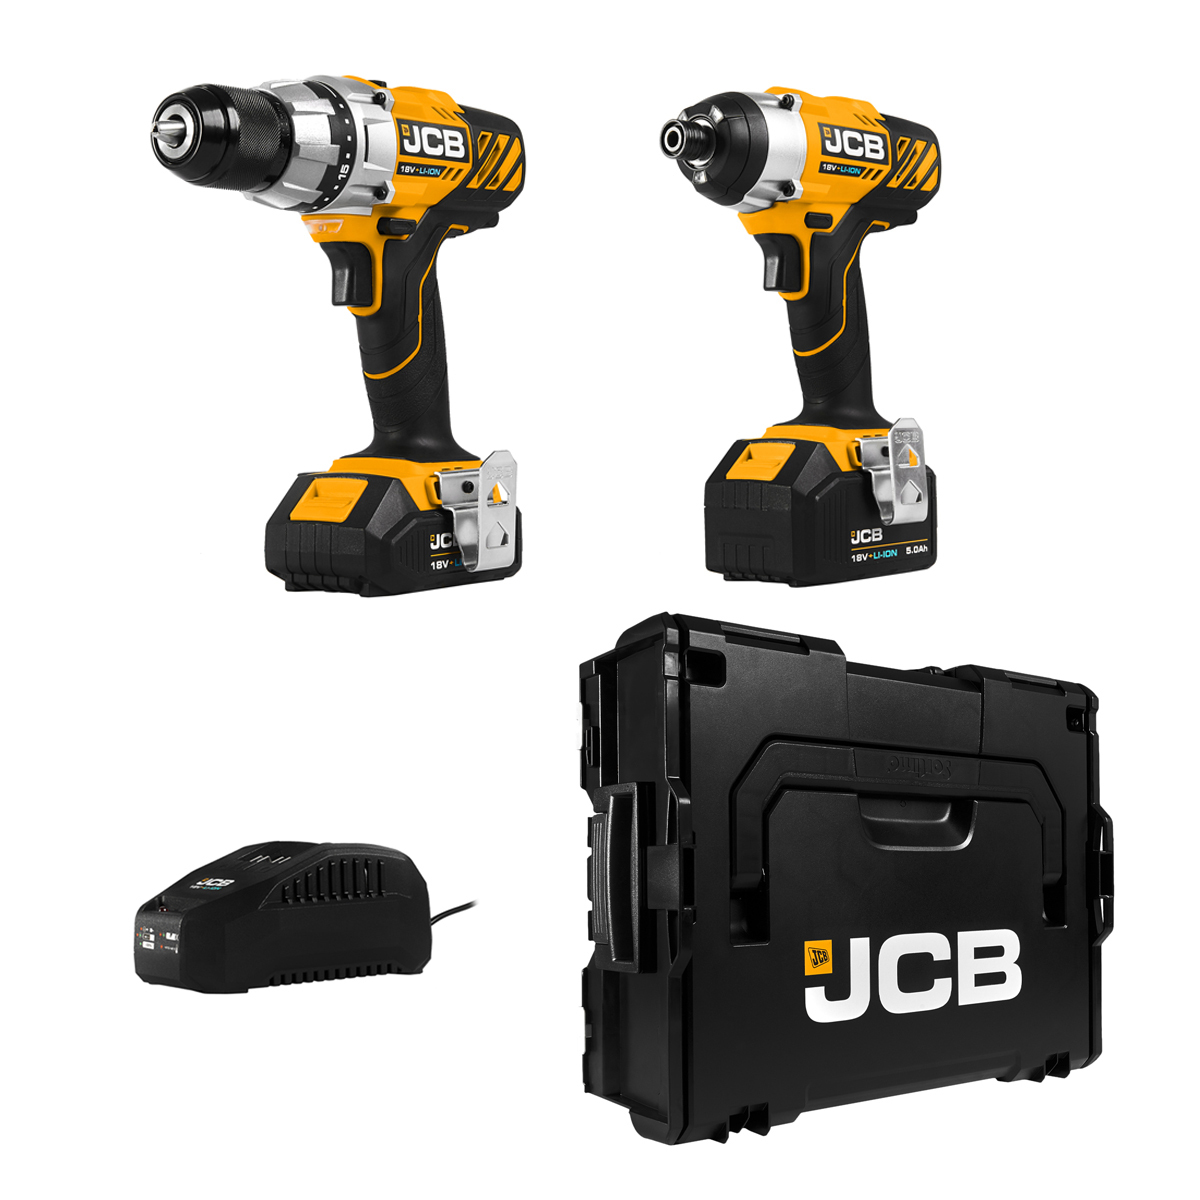 Jcb Cordless Drill And Impact Drill Kit Includes X3 Batteries Costco Uk